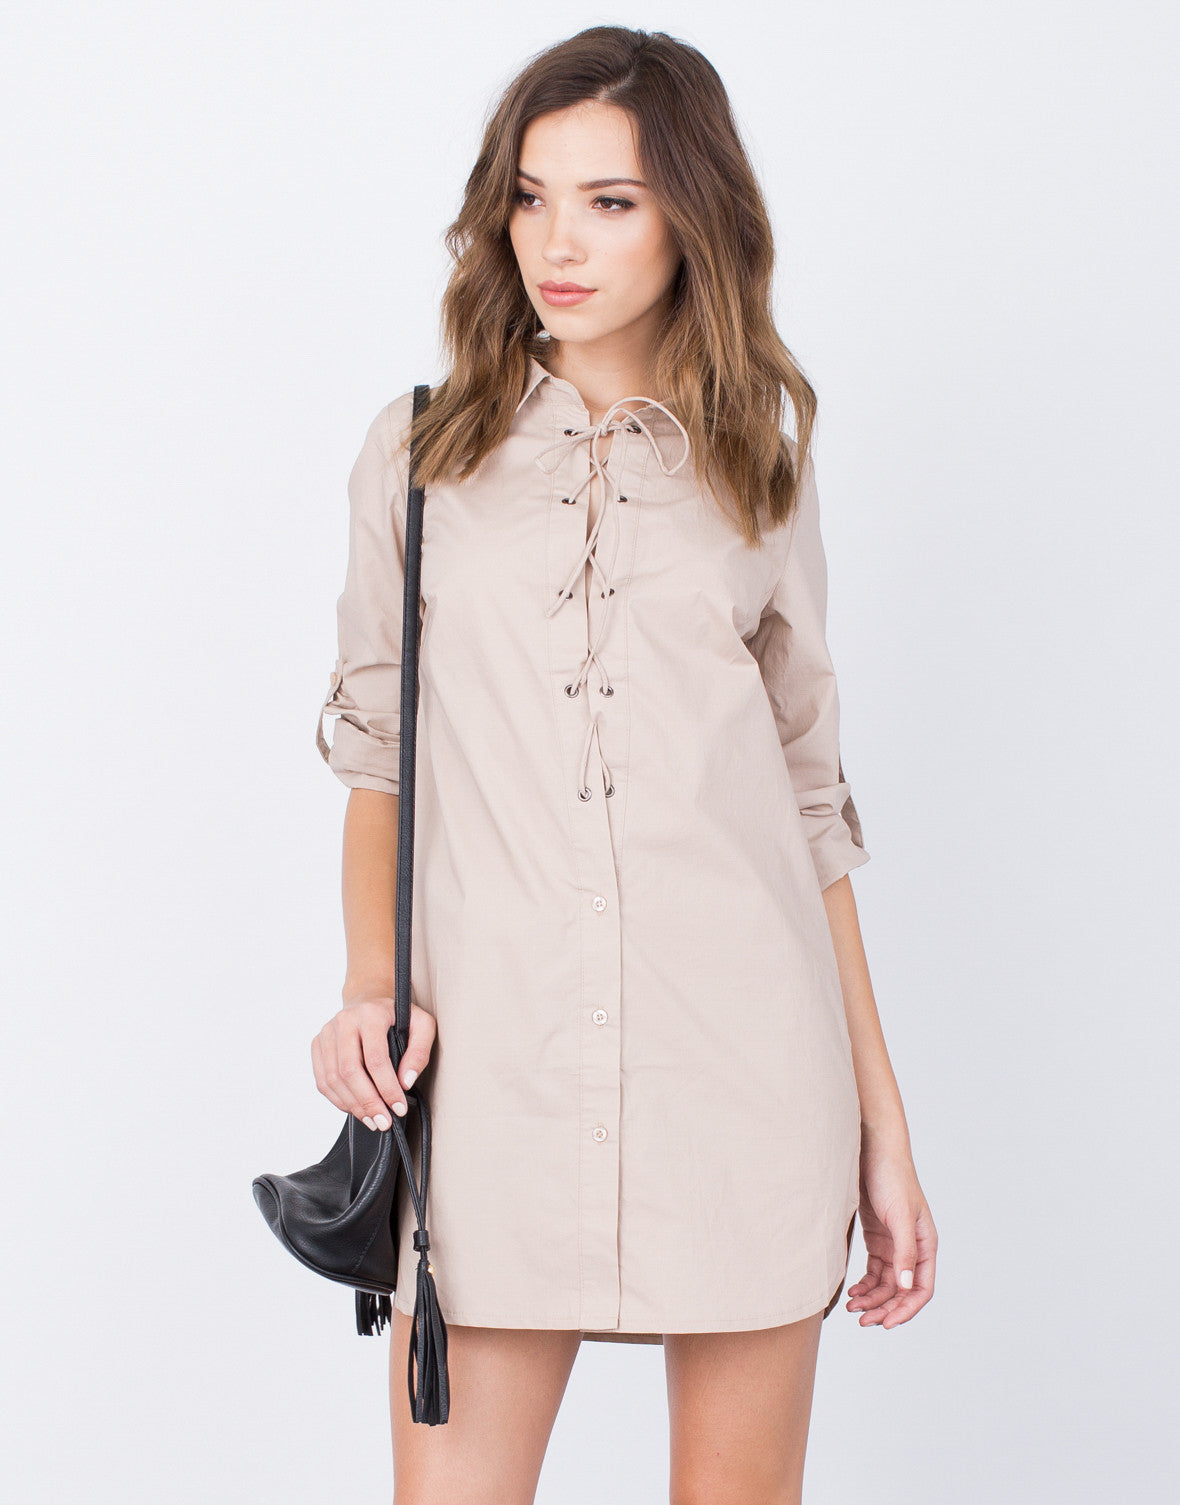 daa5b2dcf72f Lace-Up Shirt Dress - Khaki Shirt Dress - Button Up Dress – 2020AVE